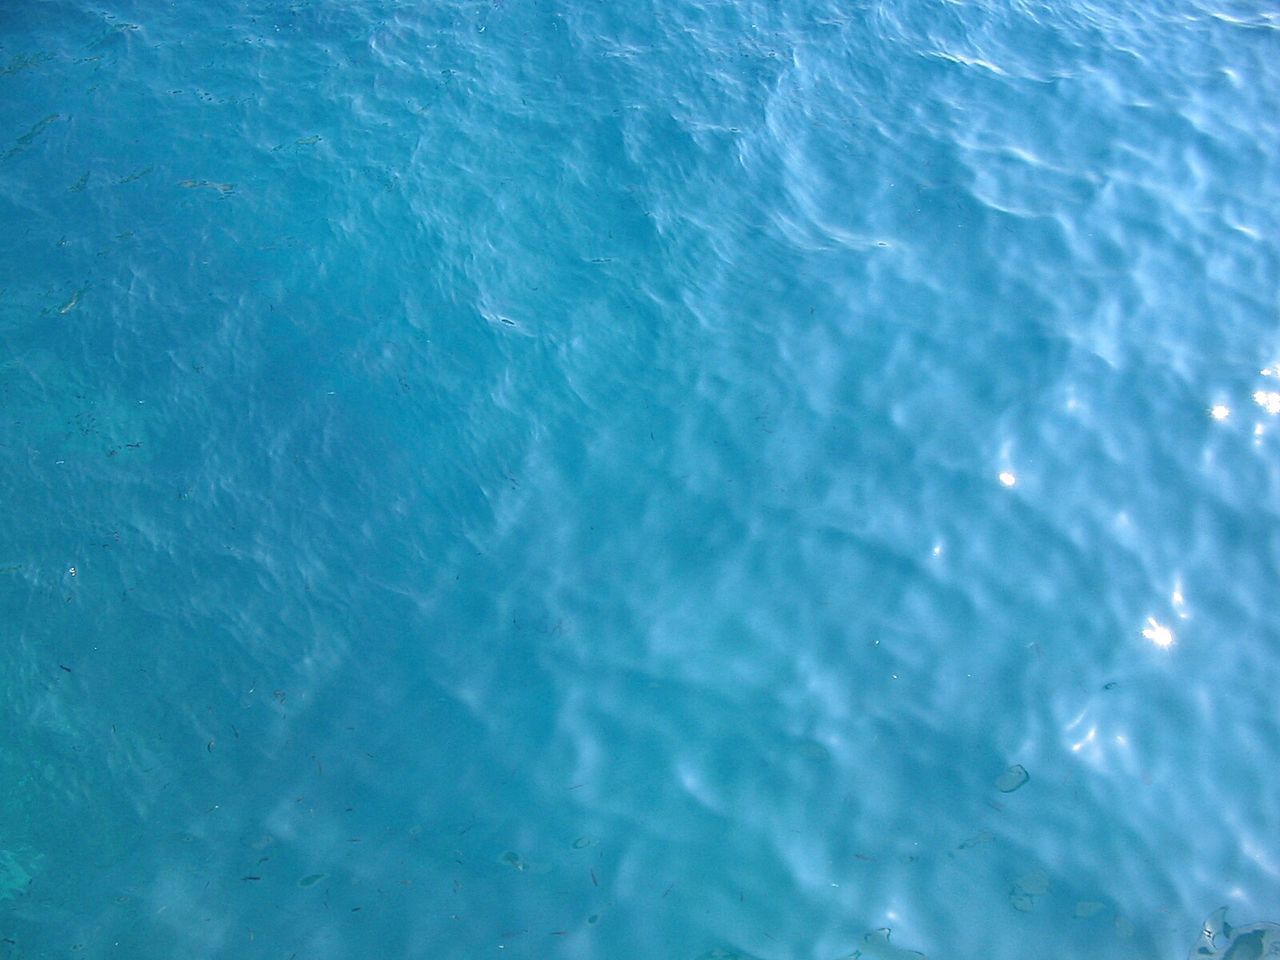 Water from top - Blue Sea Water Backgrounds Abstract Nature Swimming Pool Outdoors Wave Beauty In Nature Holidays Water From Top Lights On Water Patterns Azure EyeEmNewHere Background Waves Ocean